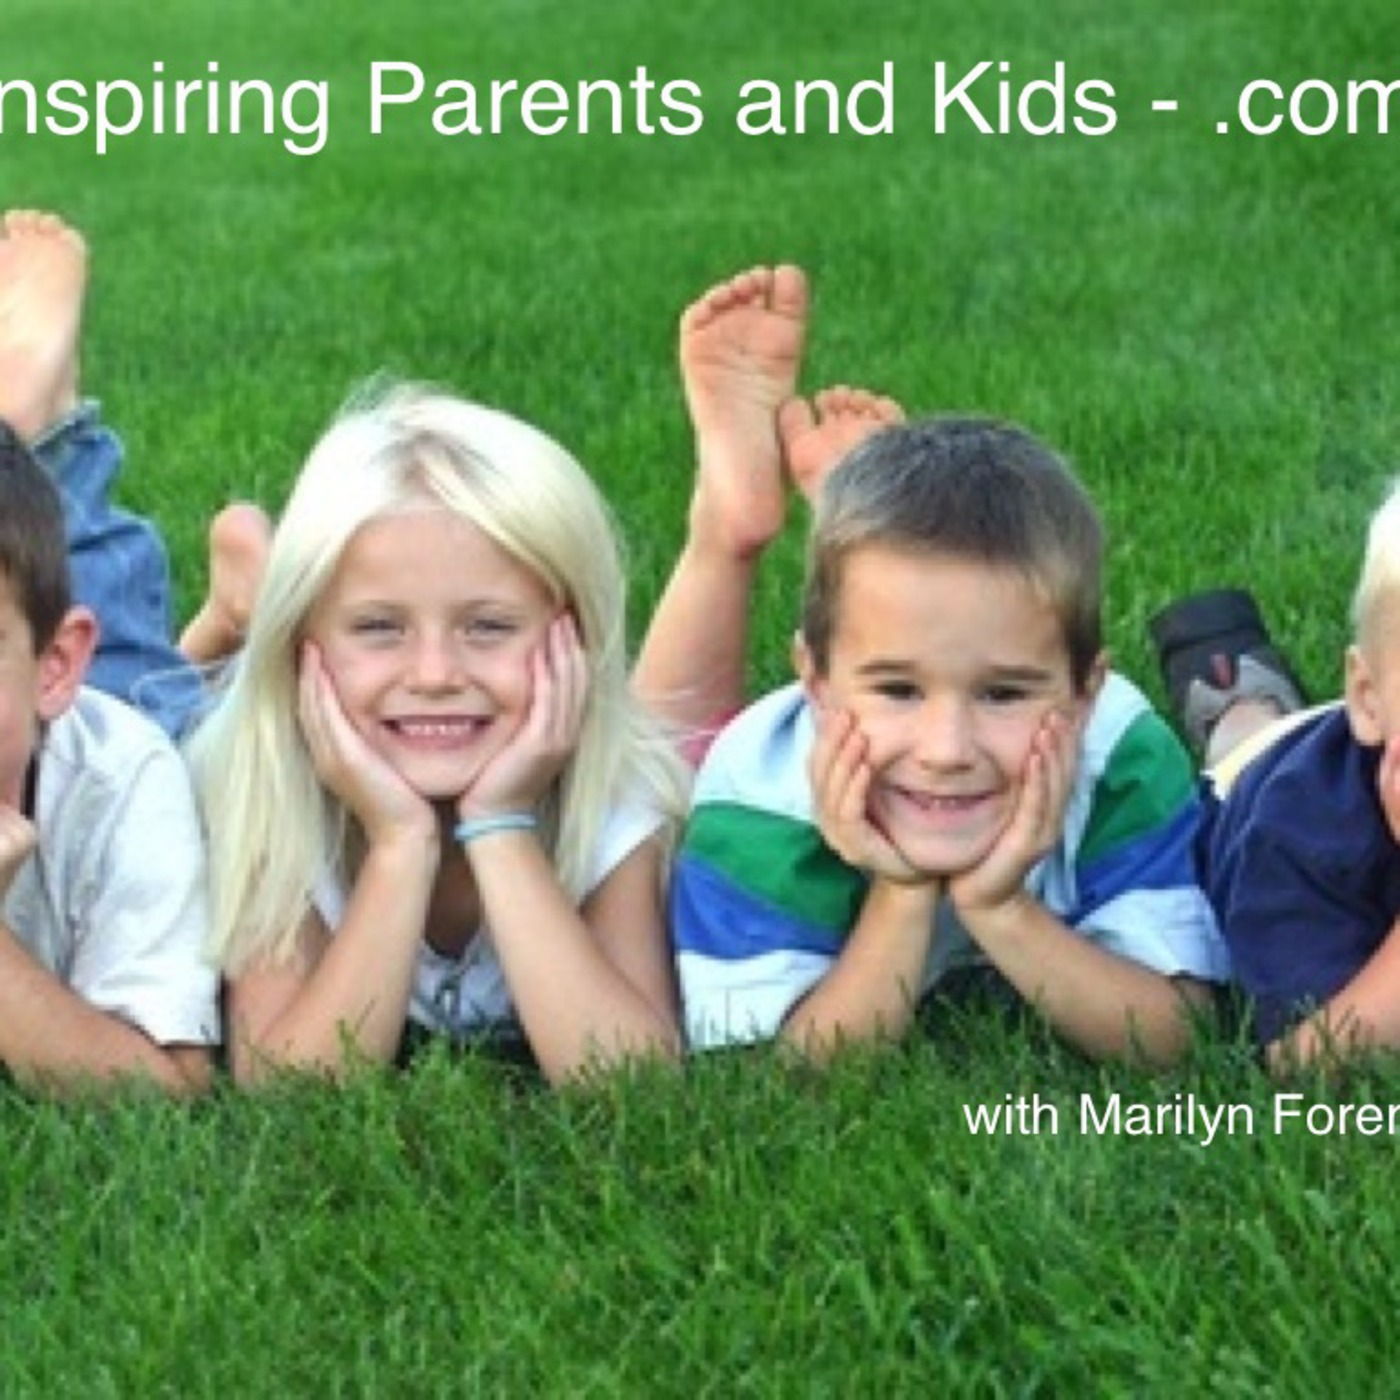 Inspiring Parents with Marilyn Foreman